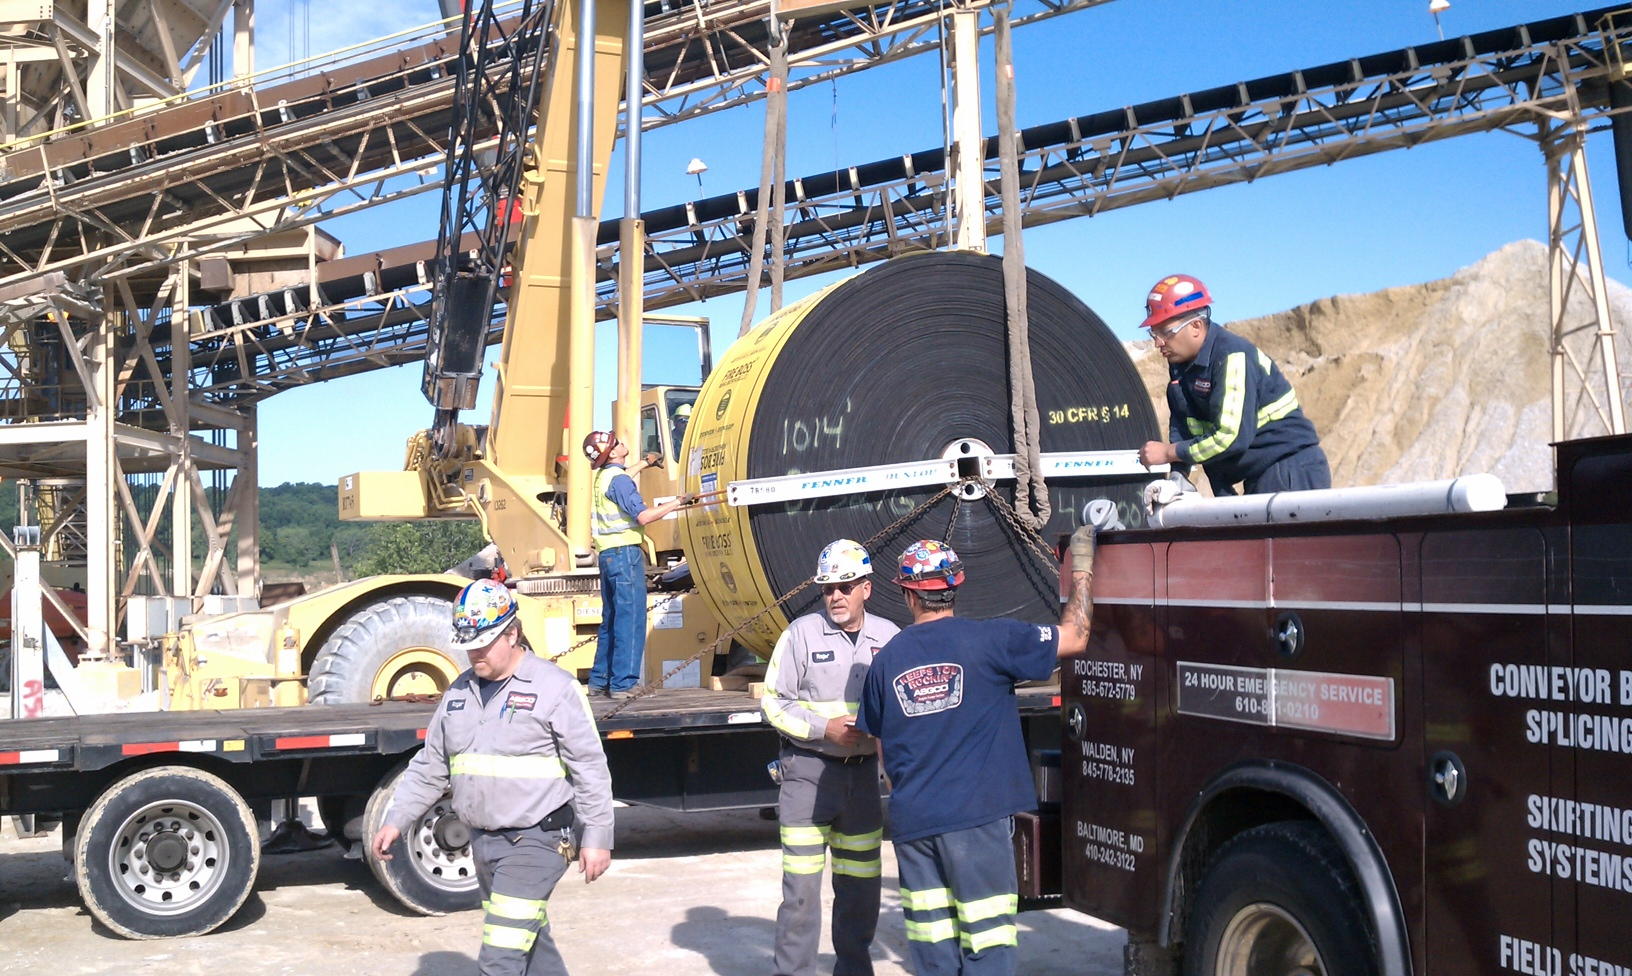 All of our field service technicians are all MSHA certified and trained to make sure that safety is our #1.